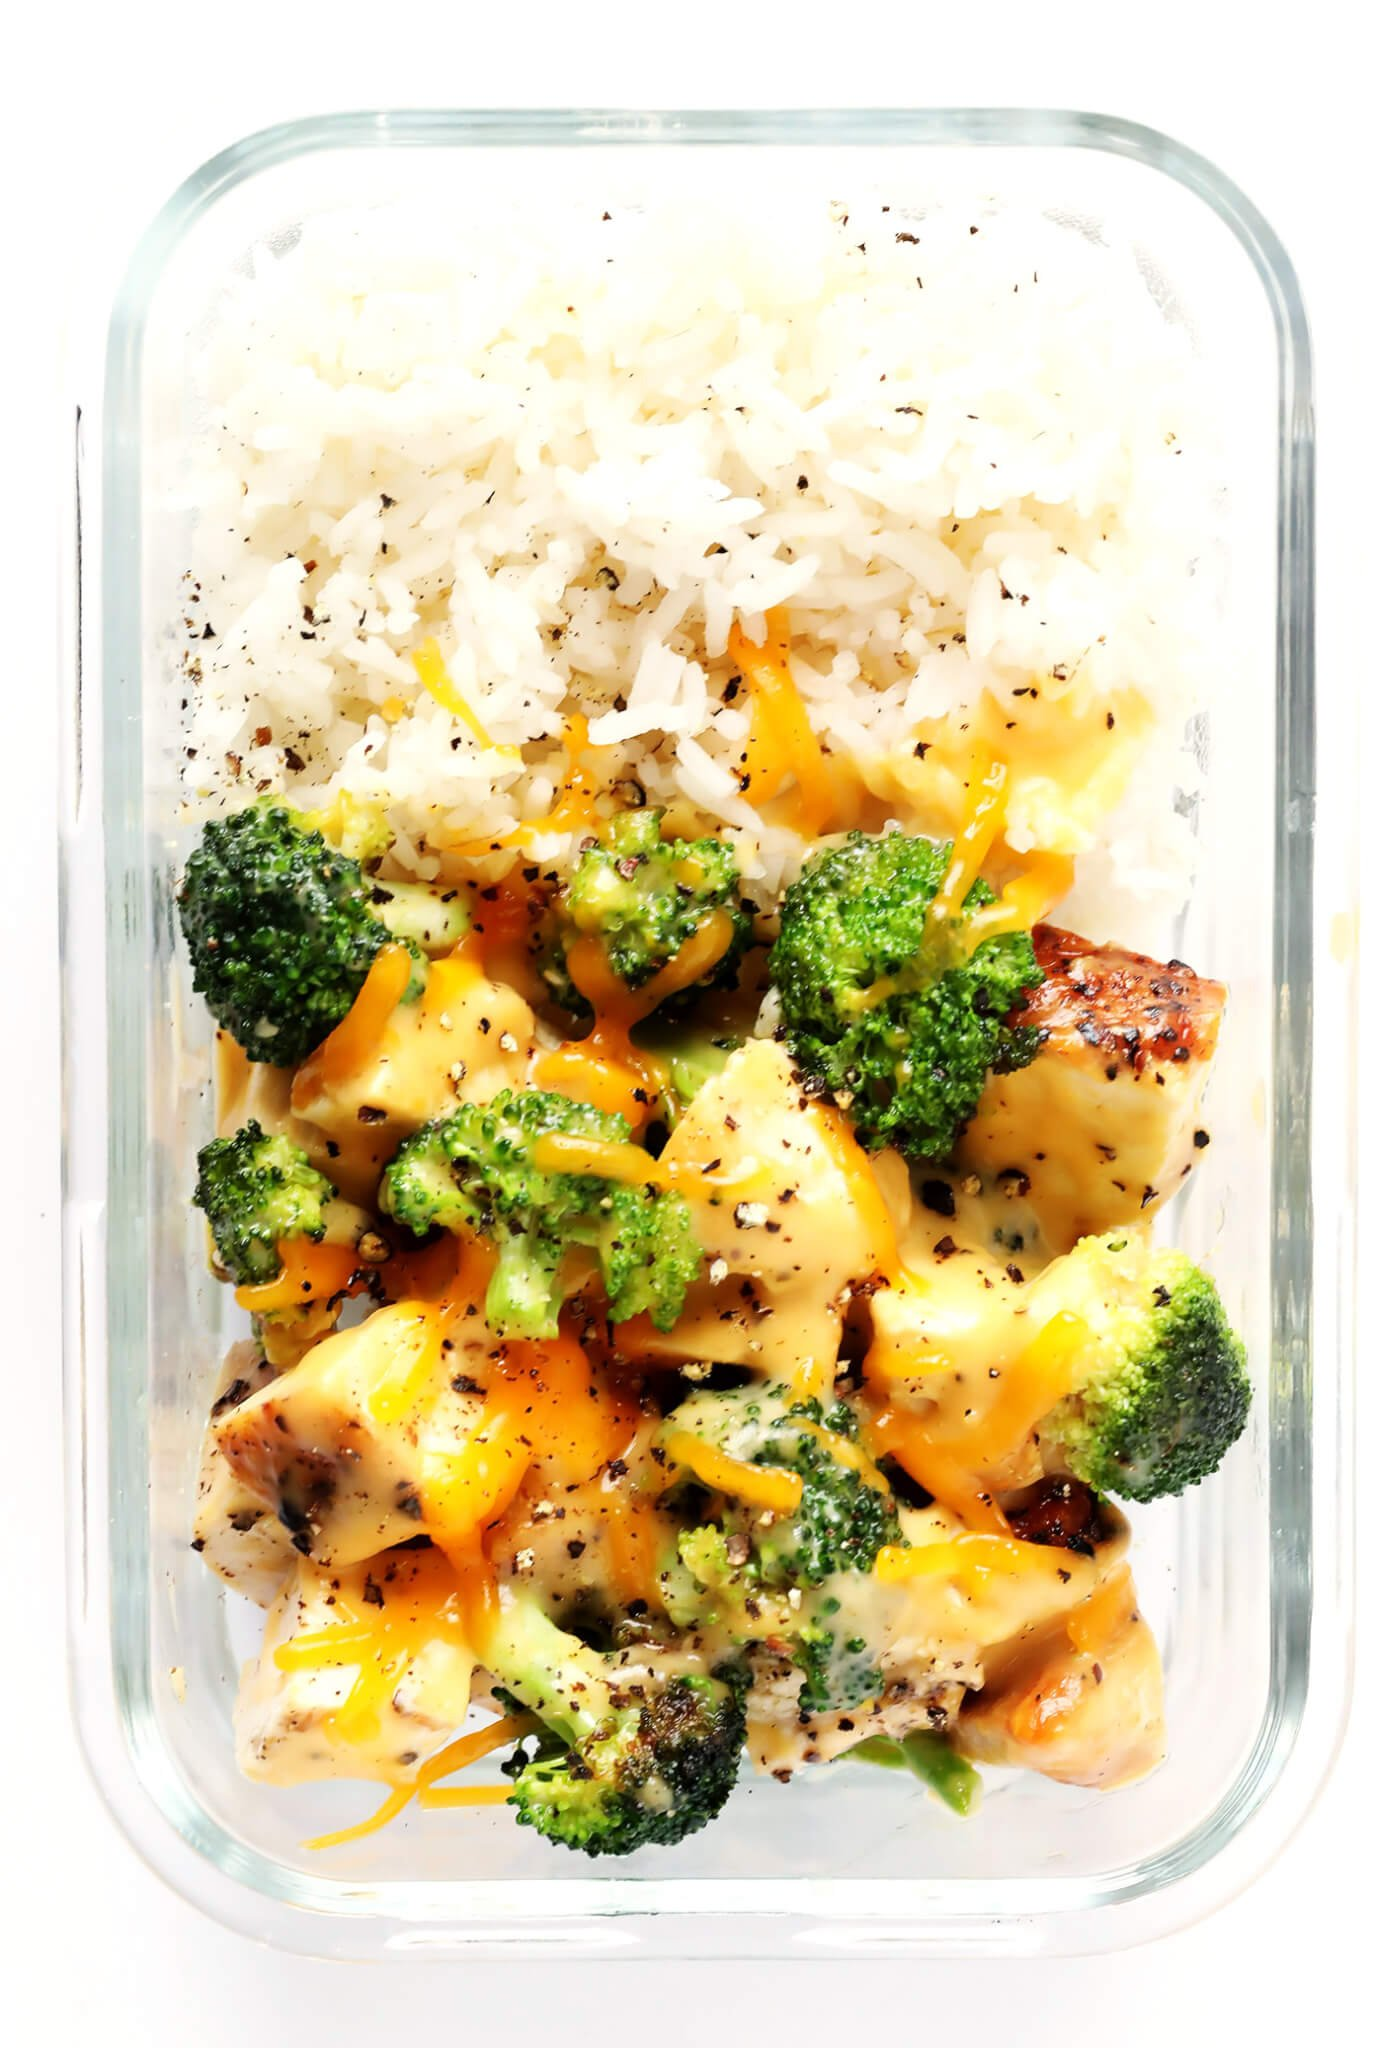 These Cheesy Broccoli, Chicken and Rice Bowls are perfect for easy meal prep or weeknight dinner, they're tossed with a lightened-up garlicky cheddar cheese sauce, and they're totally savory and delicious! Feel free to serve with rice or quinoa. | gimmesomeoven.com